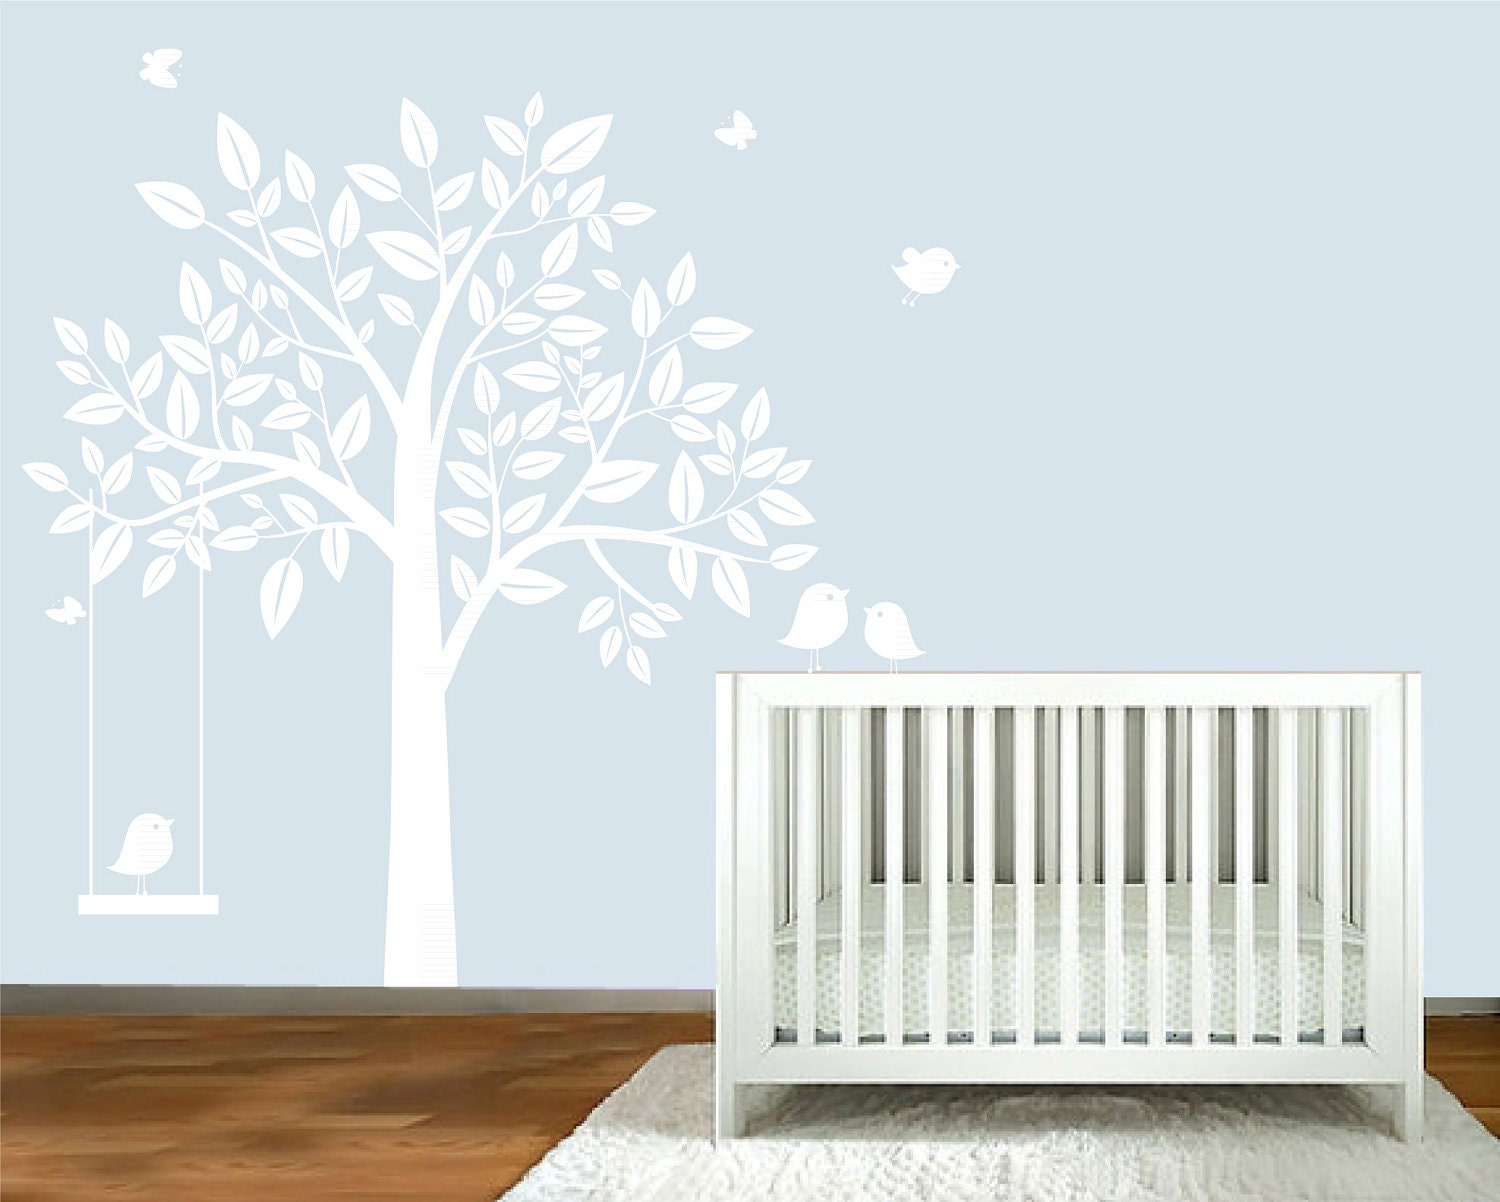 Wall decal white silhouette tree nursery wall by for Baby girl nursery mural